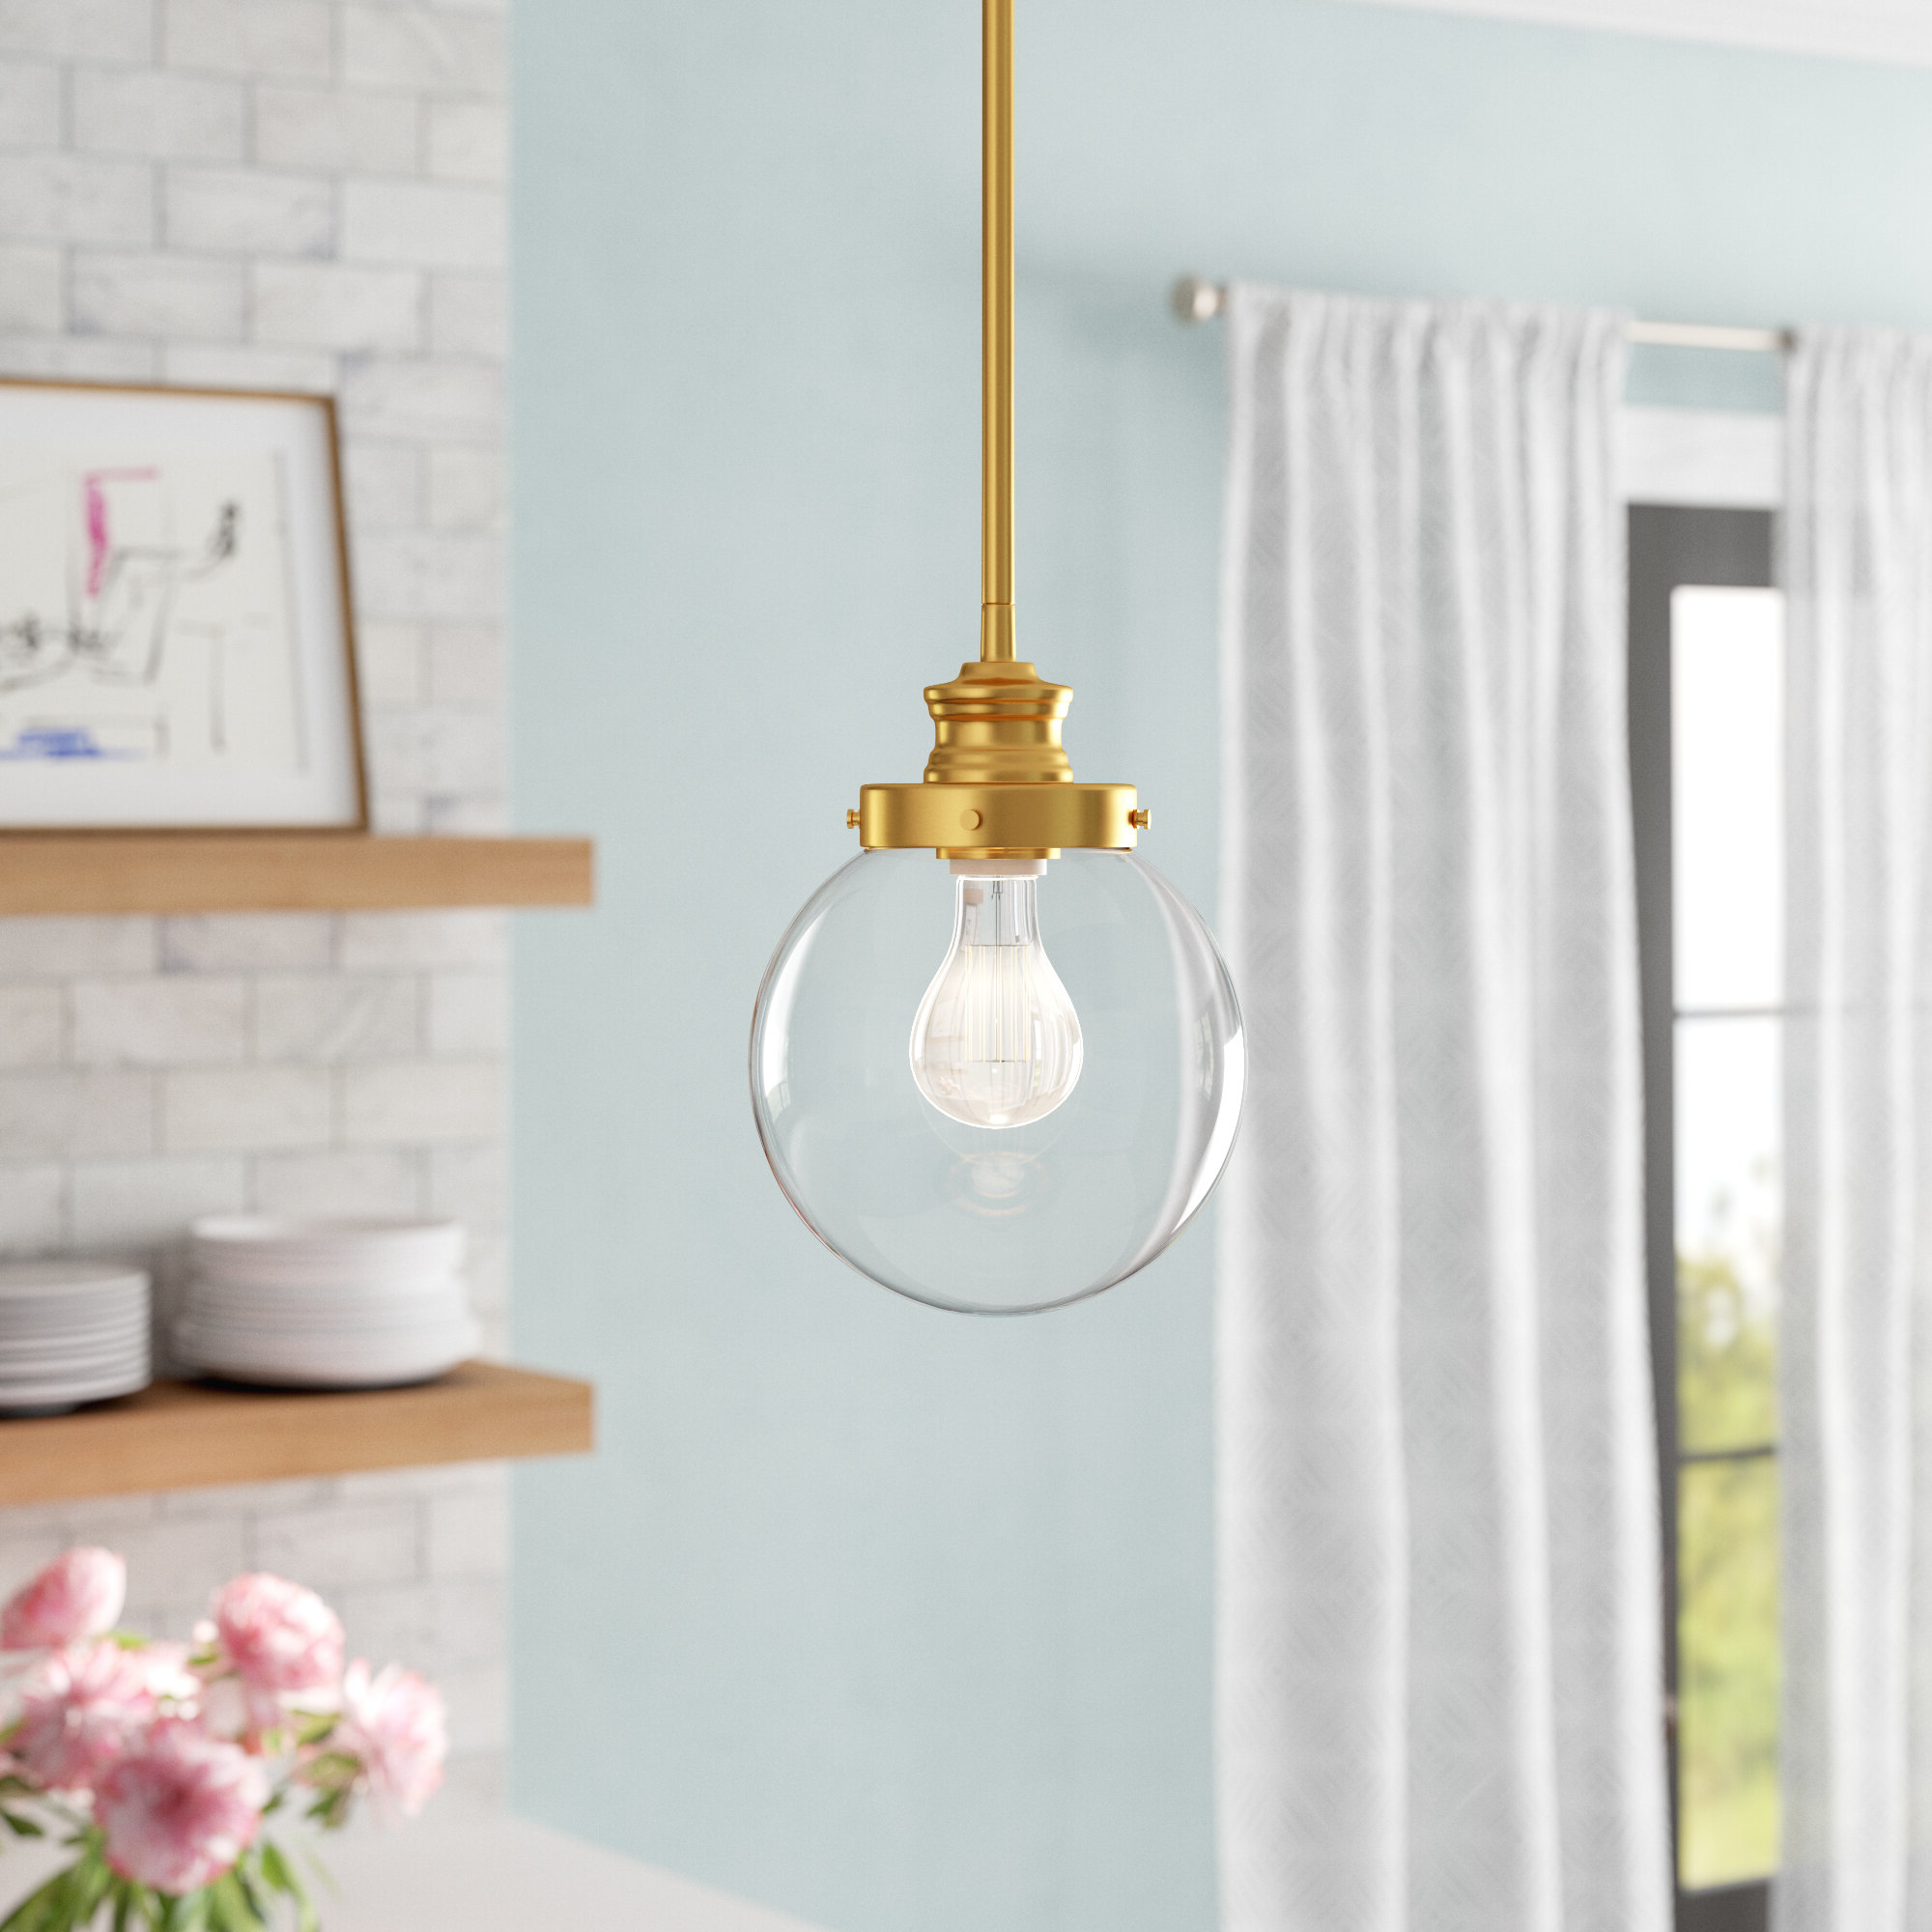 2019 Bautista 1-Light Single Globe Pendants with regard to Cayden 1-Light Single Globe Pendant